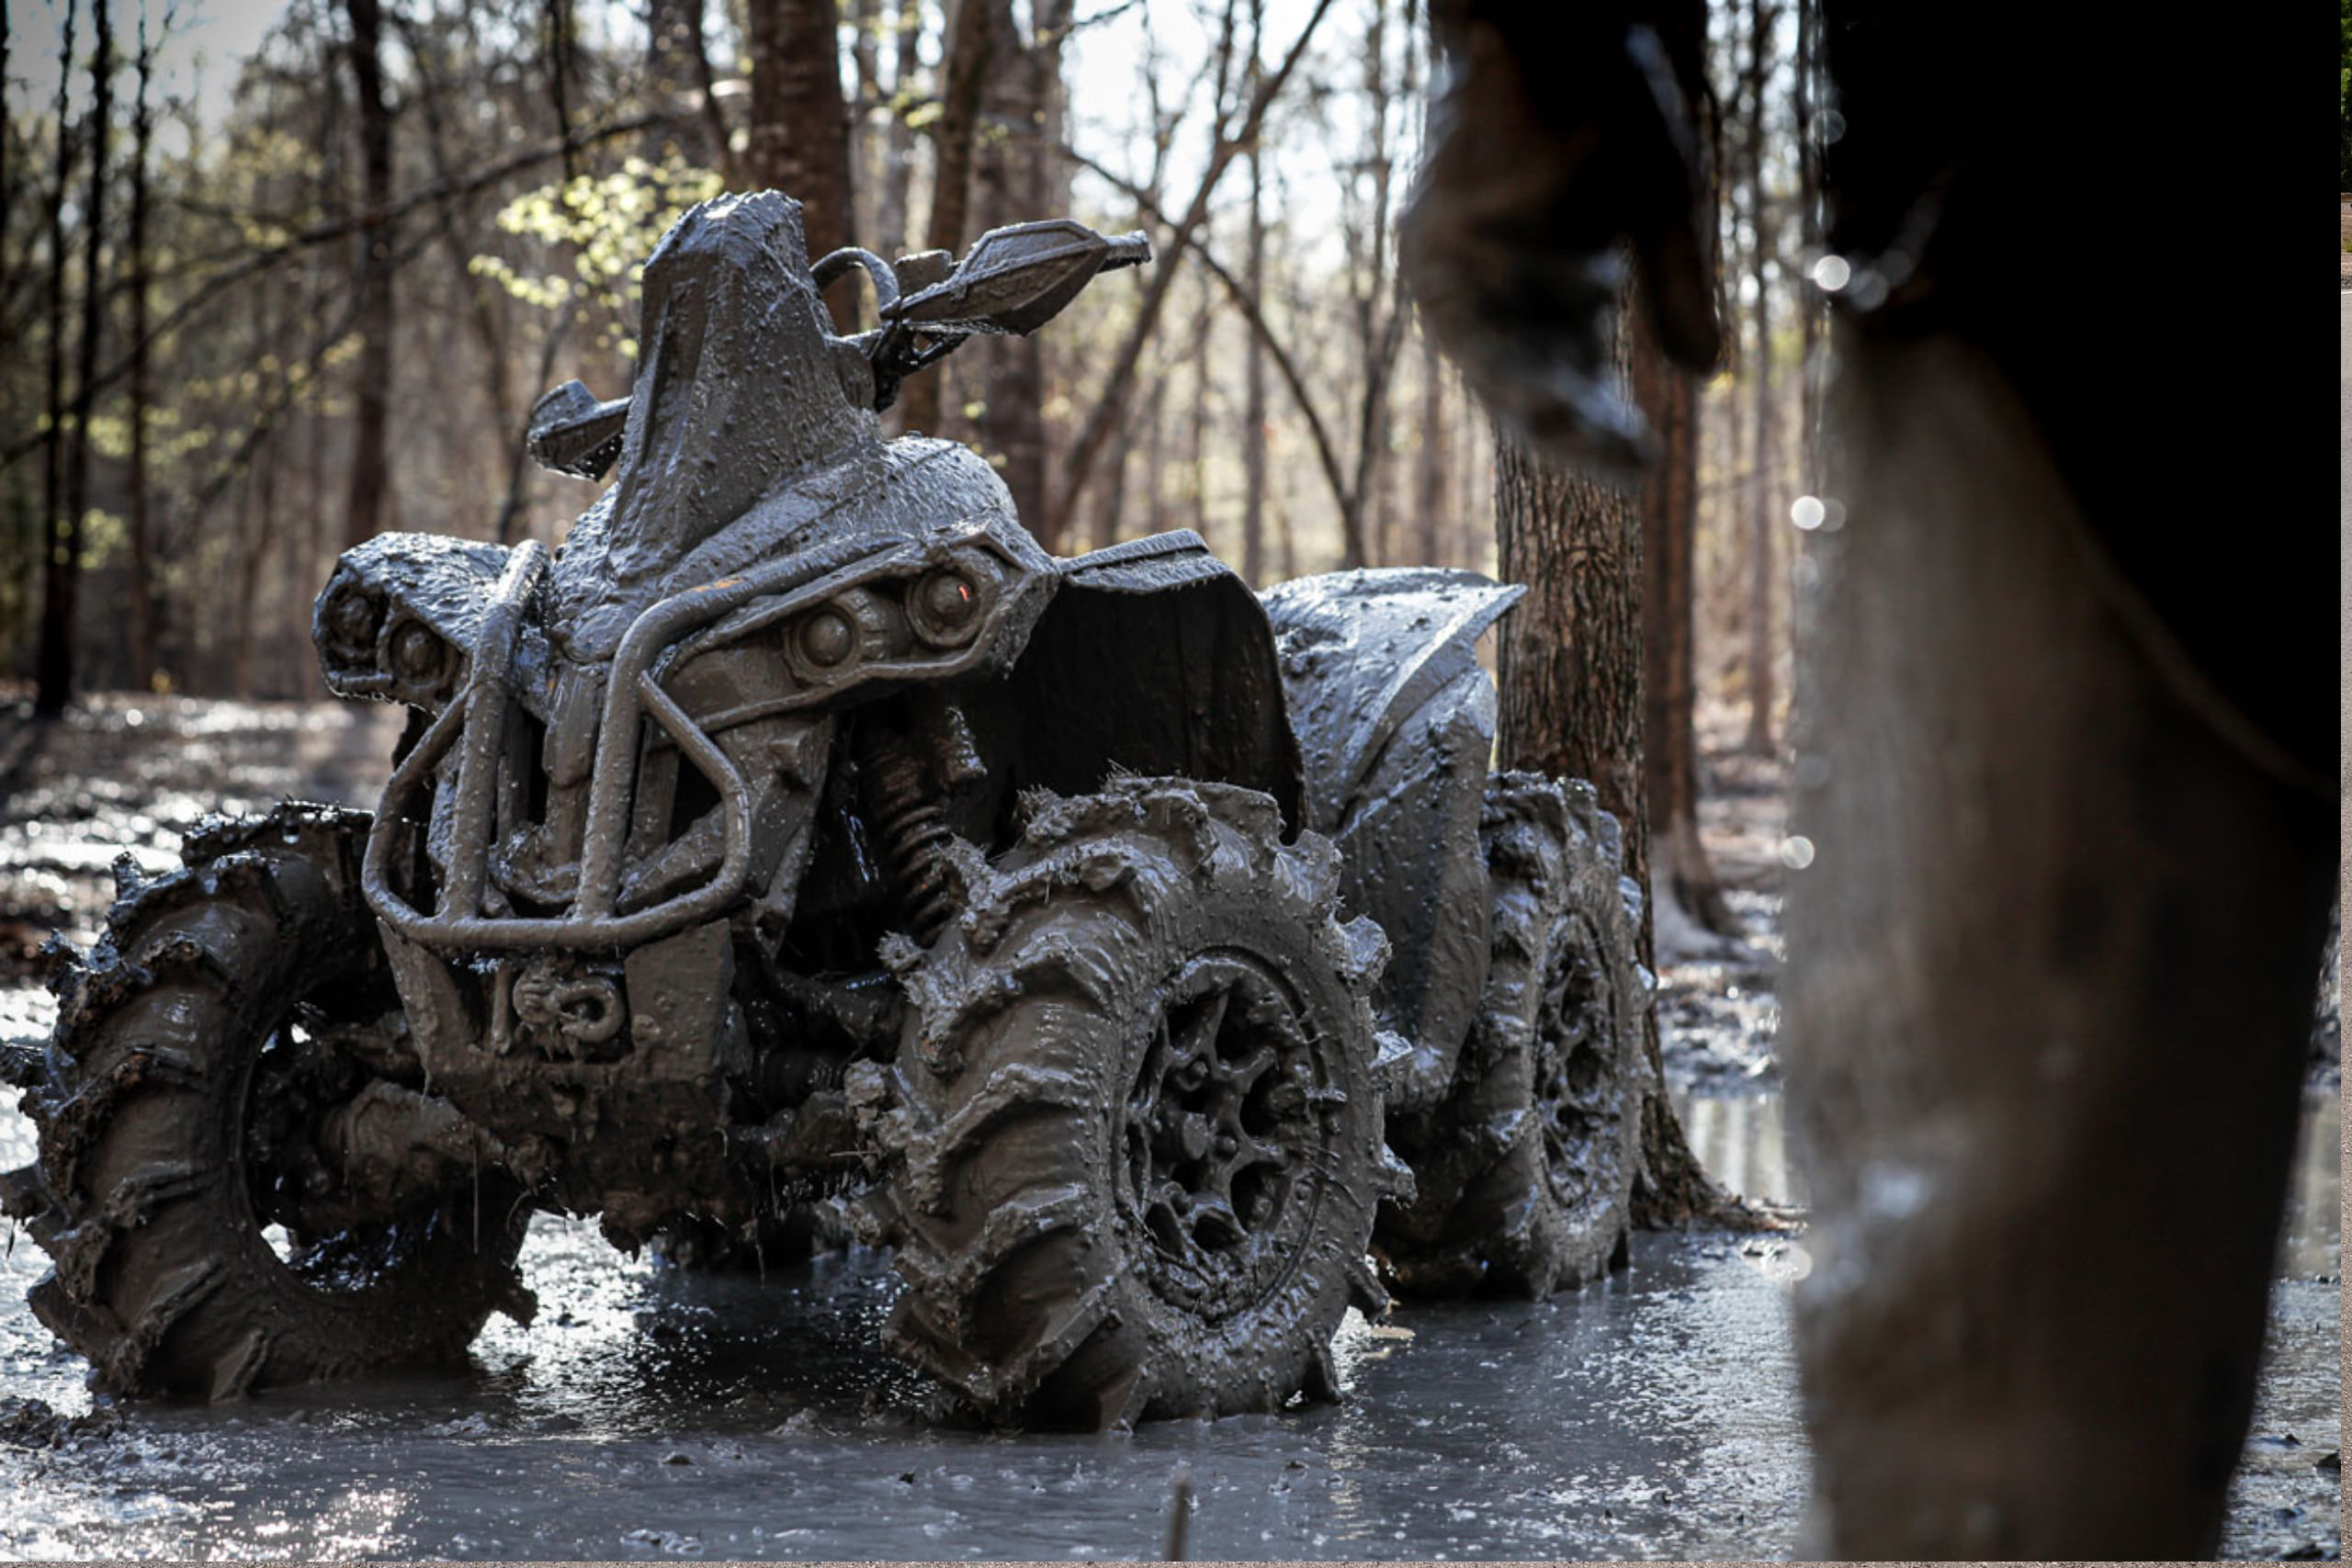 Can-Am Renegade X mr 1000R   Off-Road ATV 2022